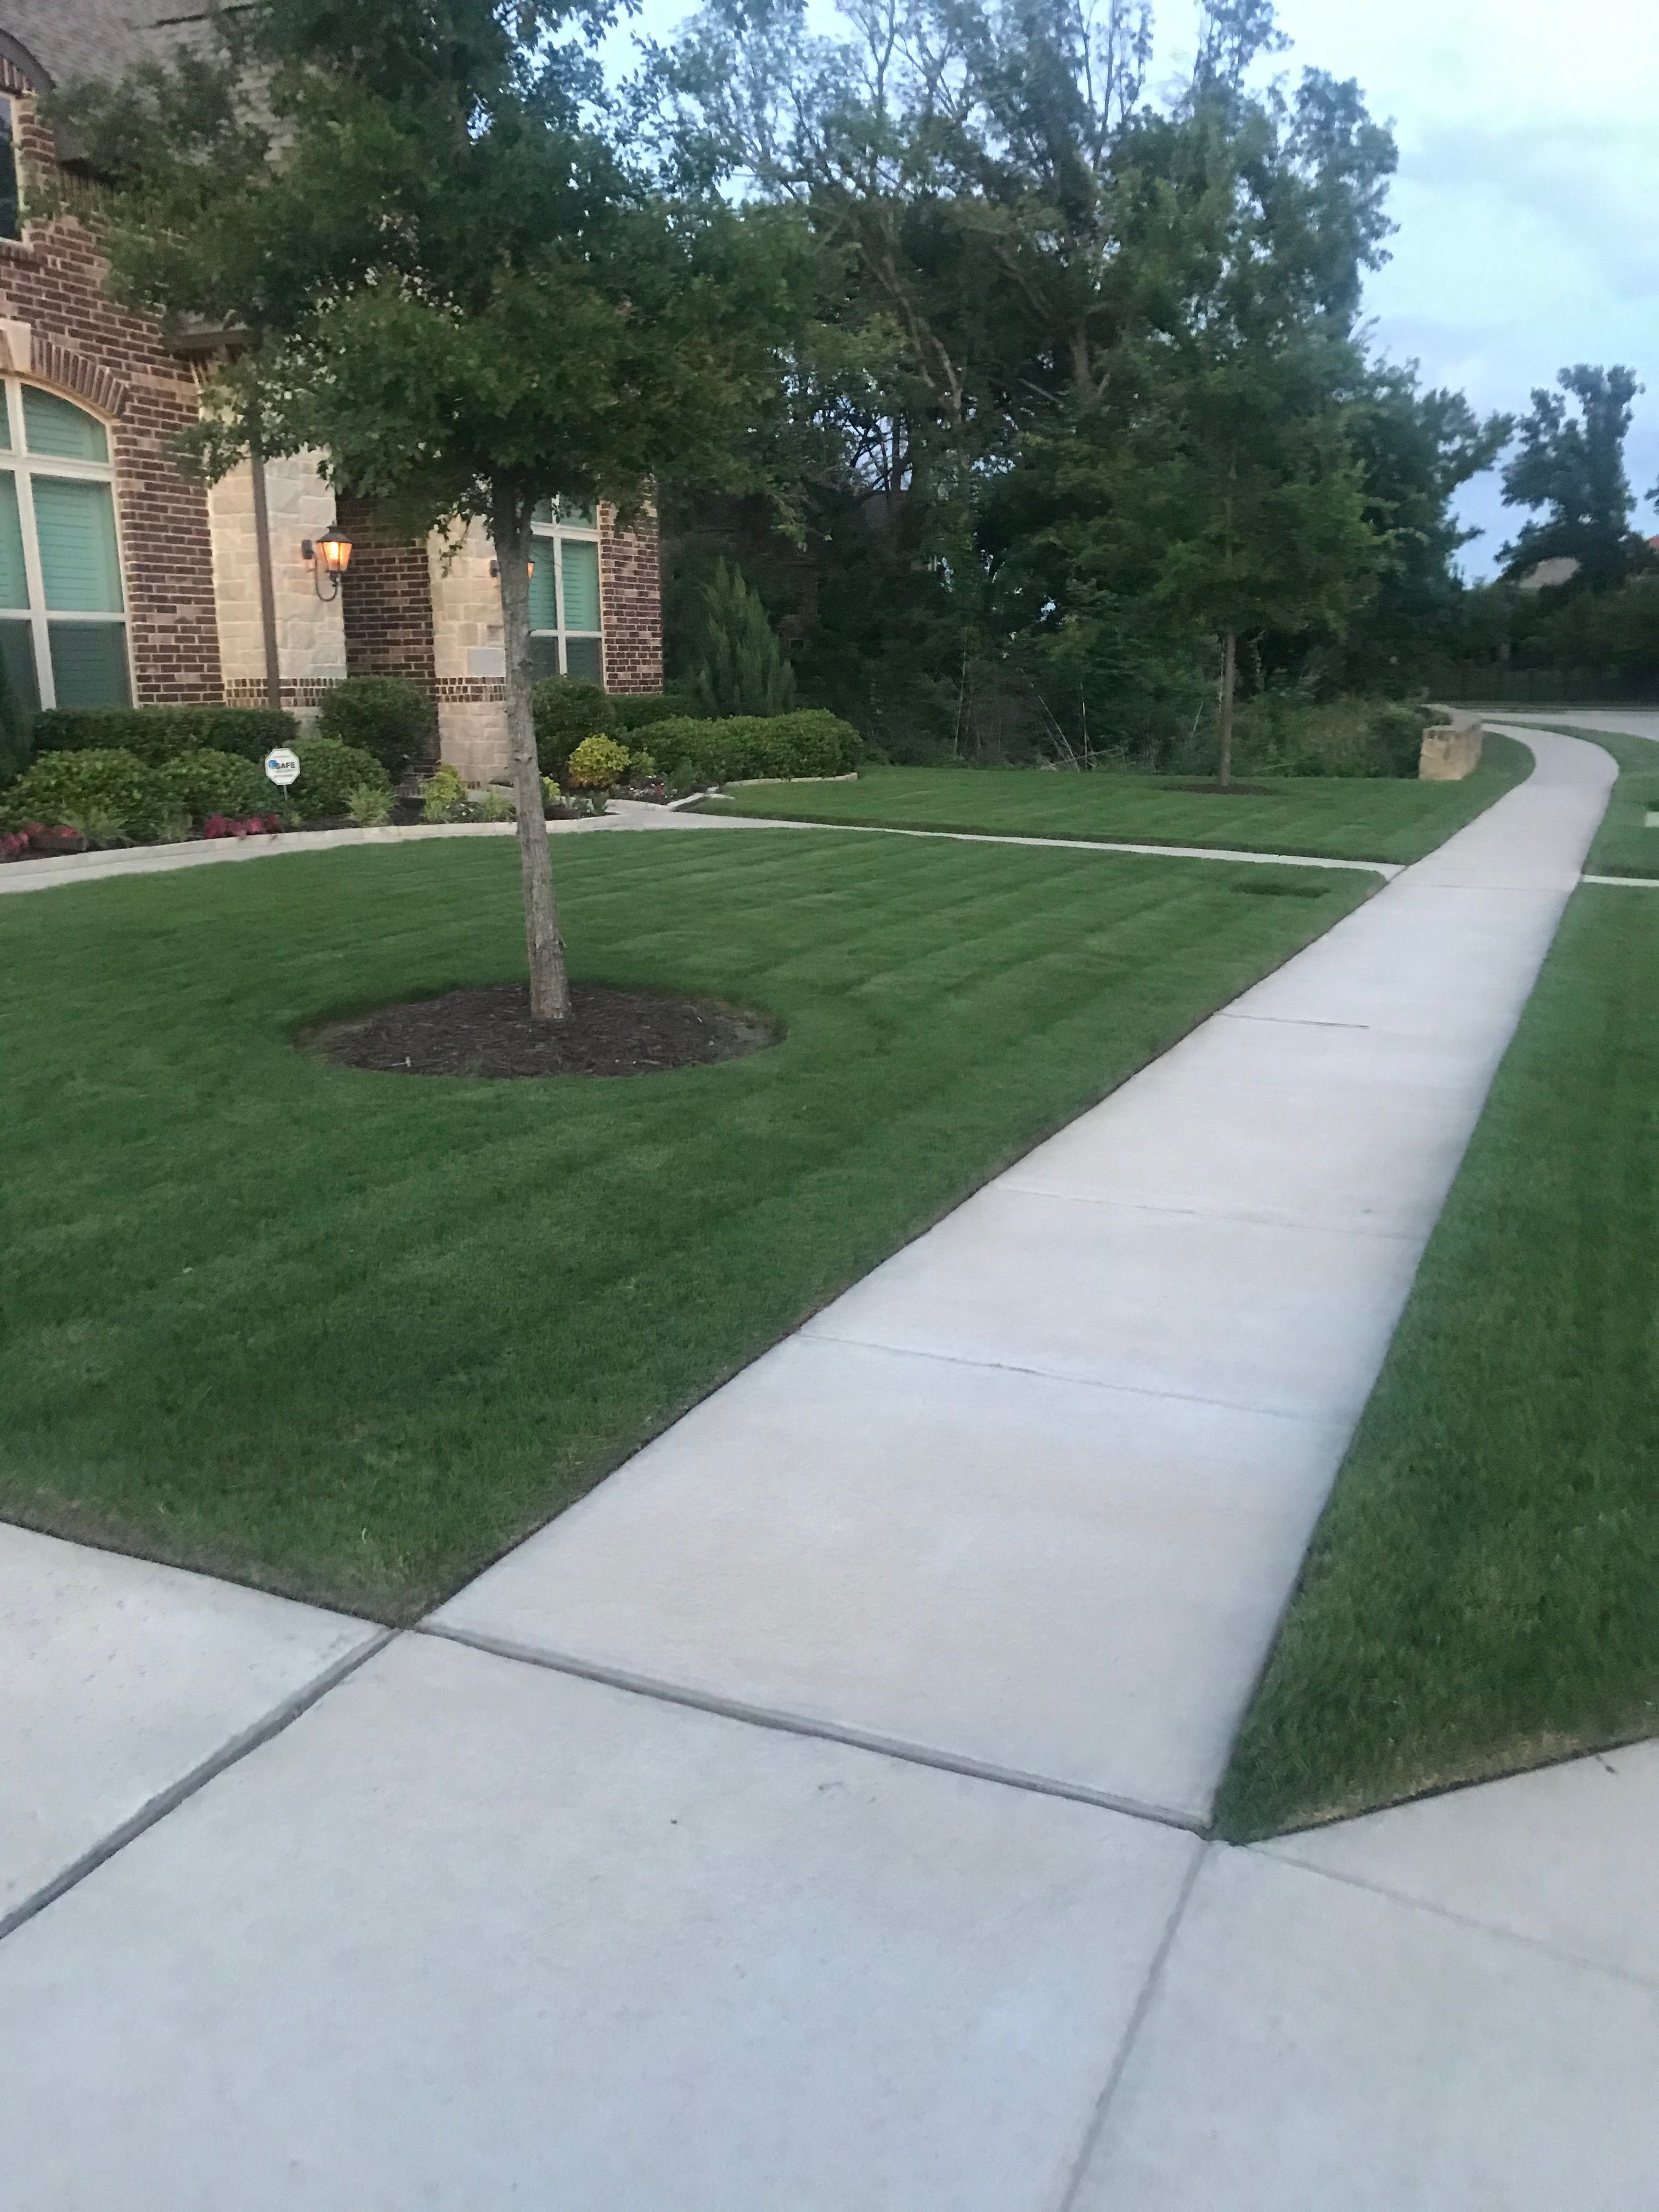 Flower mound lawn service hope landscaping in 2020